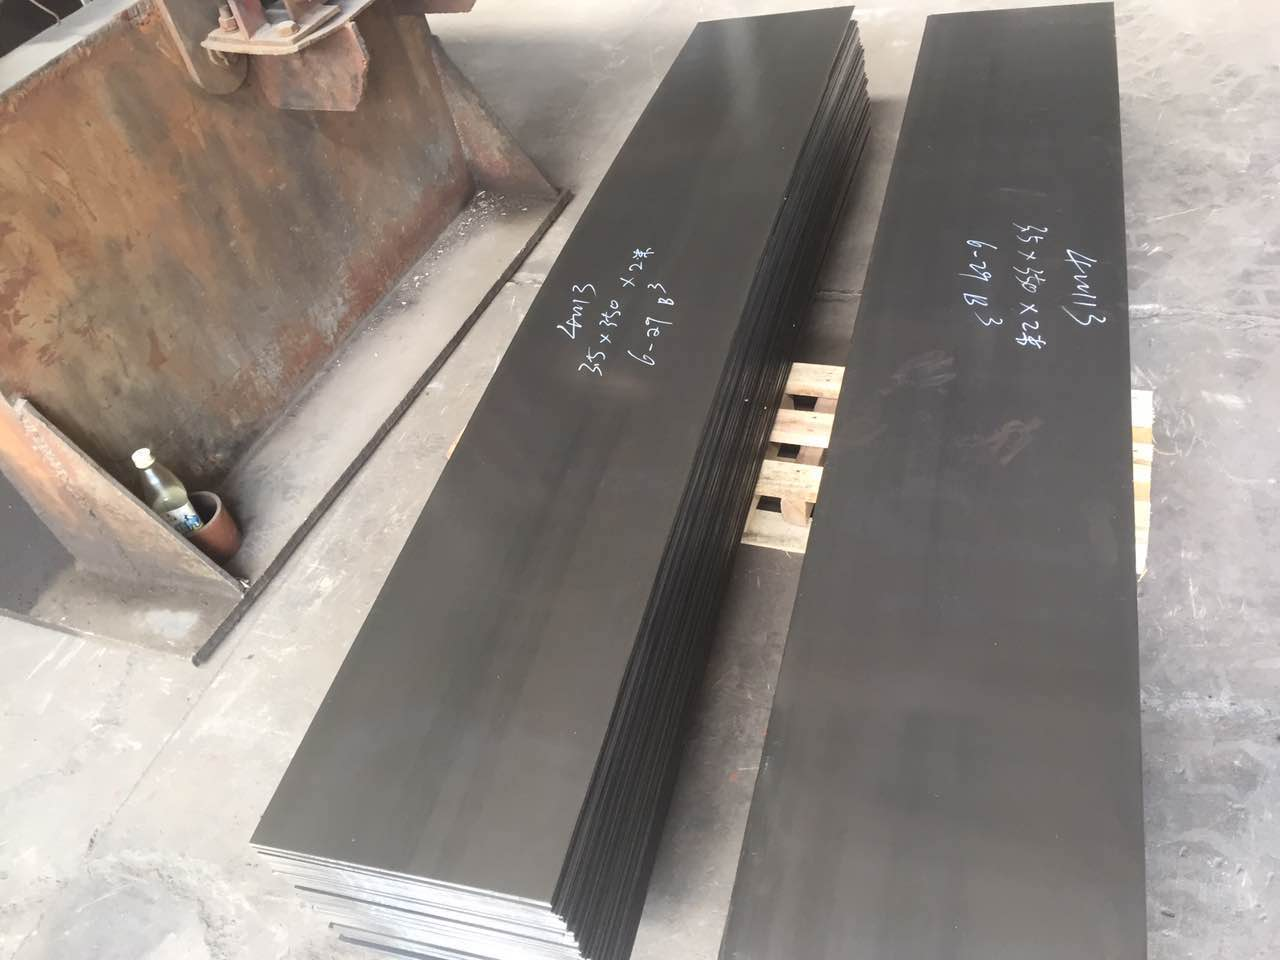 AISI 420A, 420B, 420, 420C, and 420D martensitic stainless steel plate